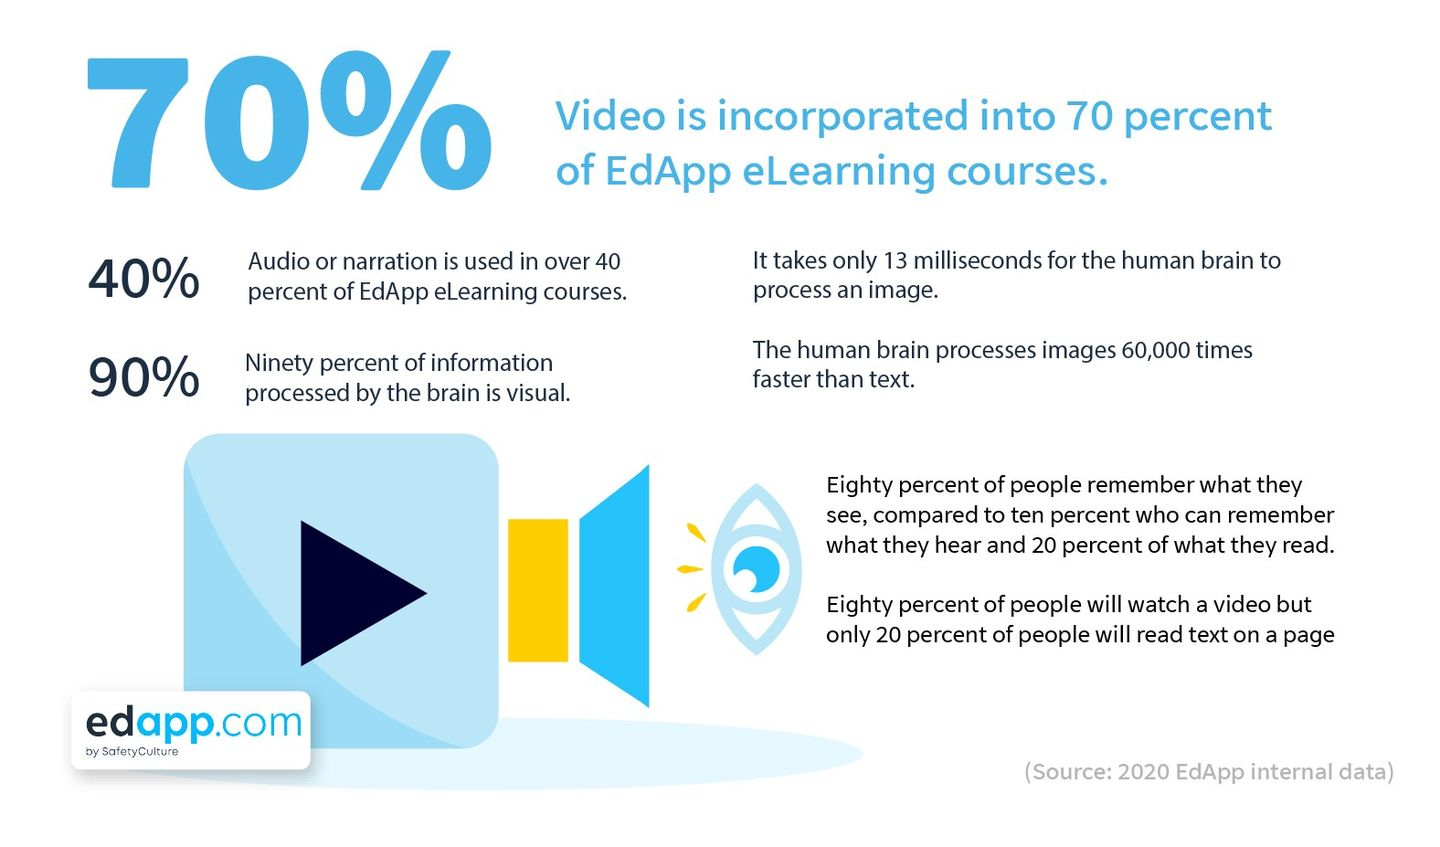 eLearning statistics 2020 - EdApp - Video, image, audio, narration in learning